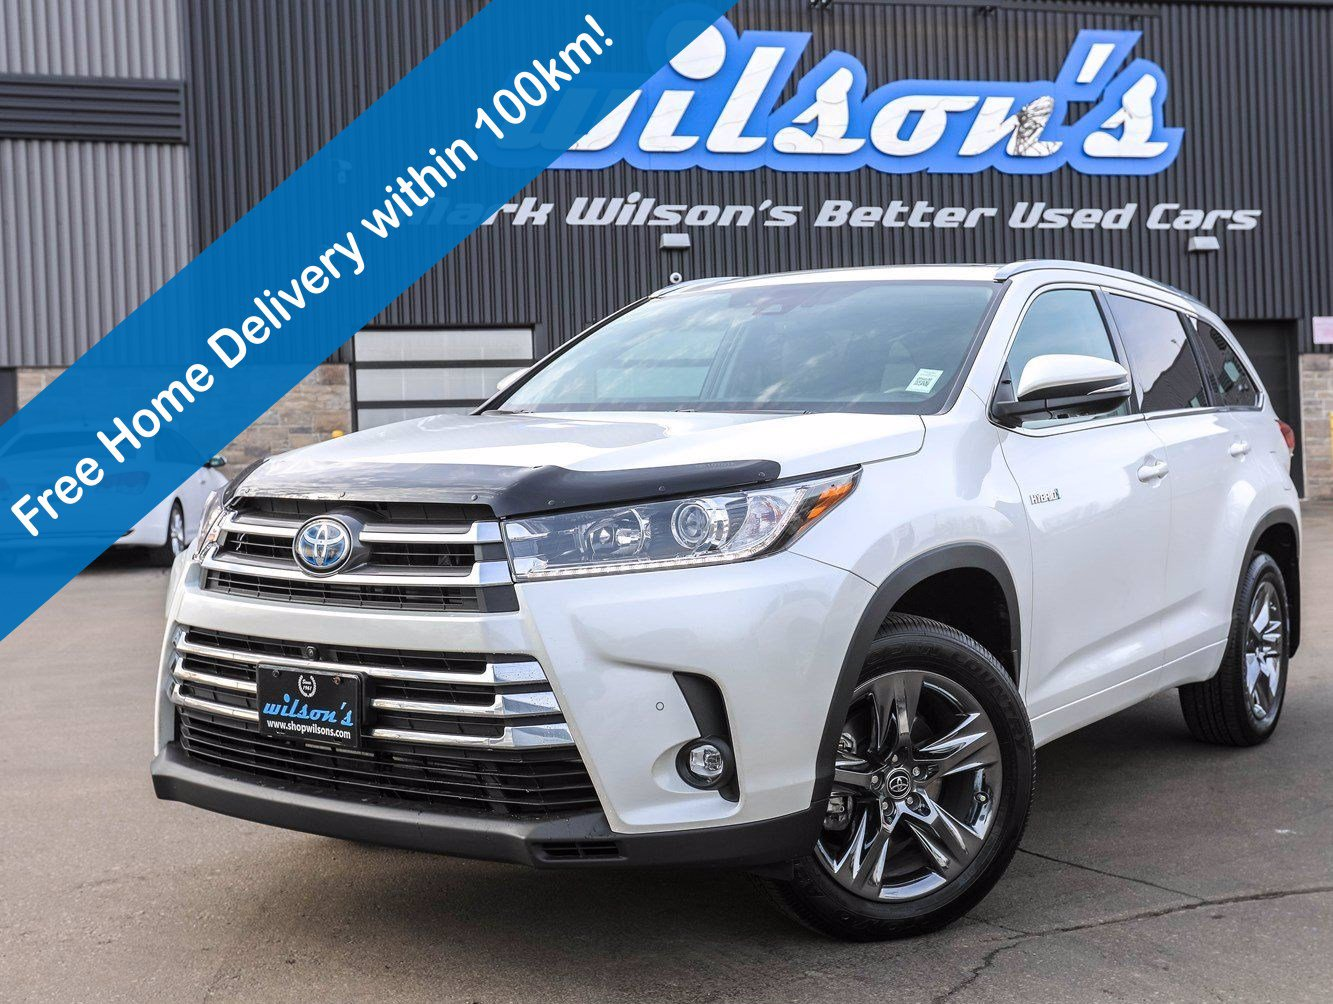 Certified Pre-Owned 2019 Toyota Highlander Hybrid Limited, Leather, Navigation, Sunroof, Heated + Cooled Seats, 360 Camera and more!